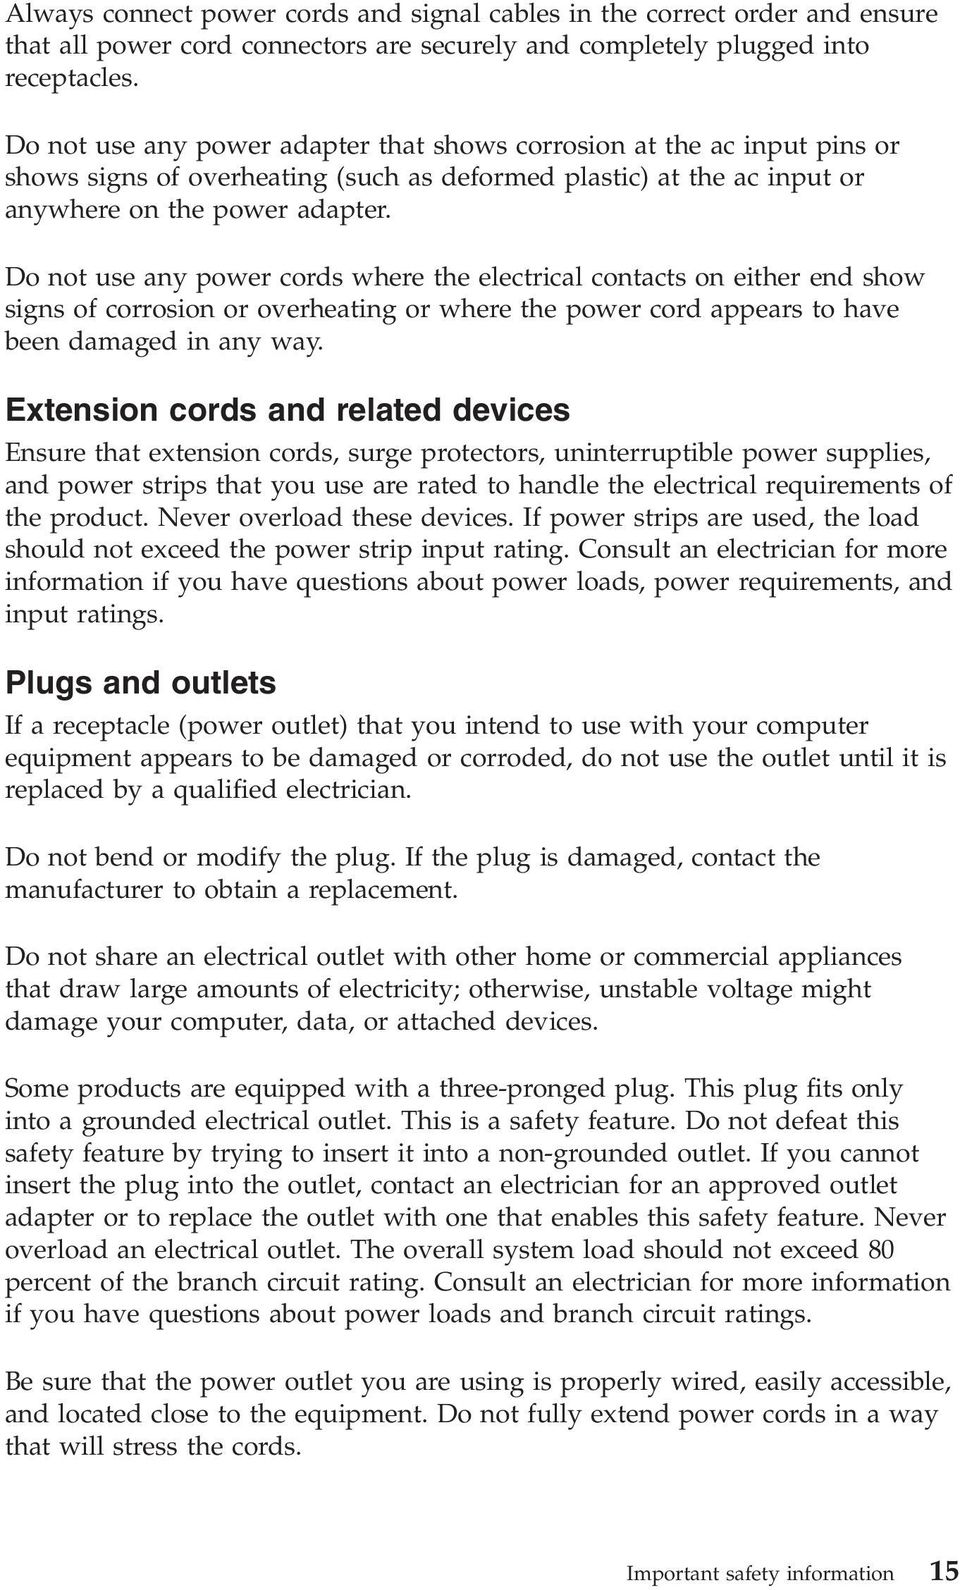 Do not use any power cords where the electrical contacts on either end show signs of corrosion or overheating or where the power cord appears to have been damaged in any way.